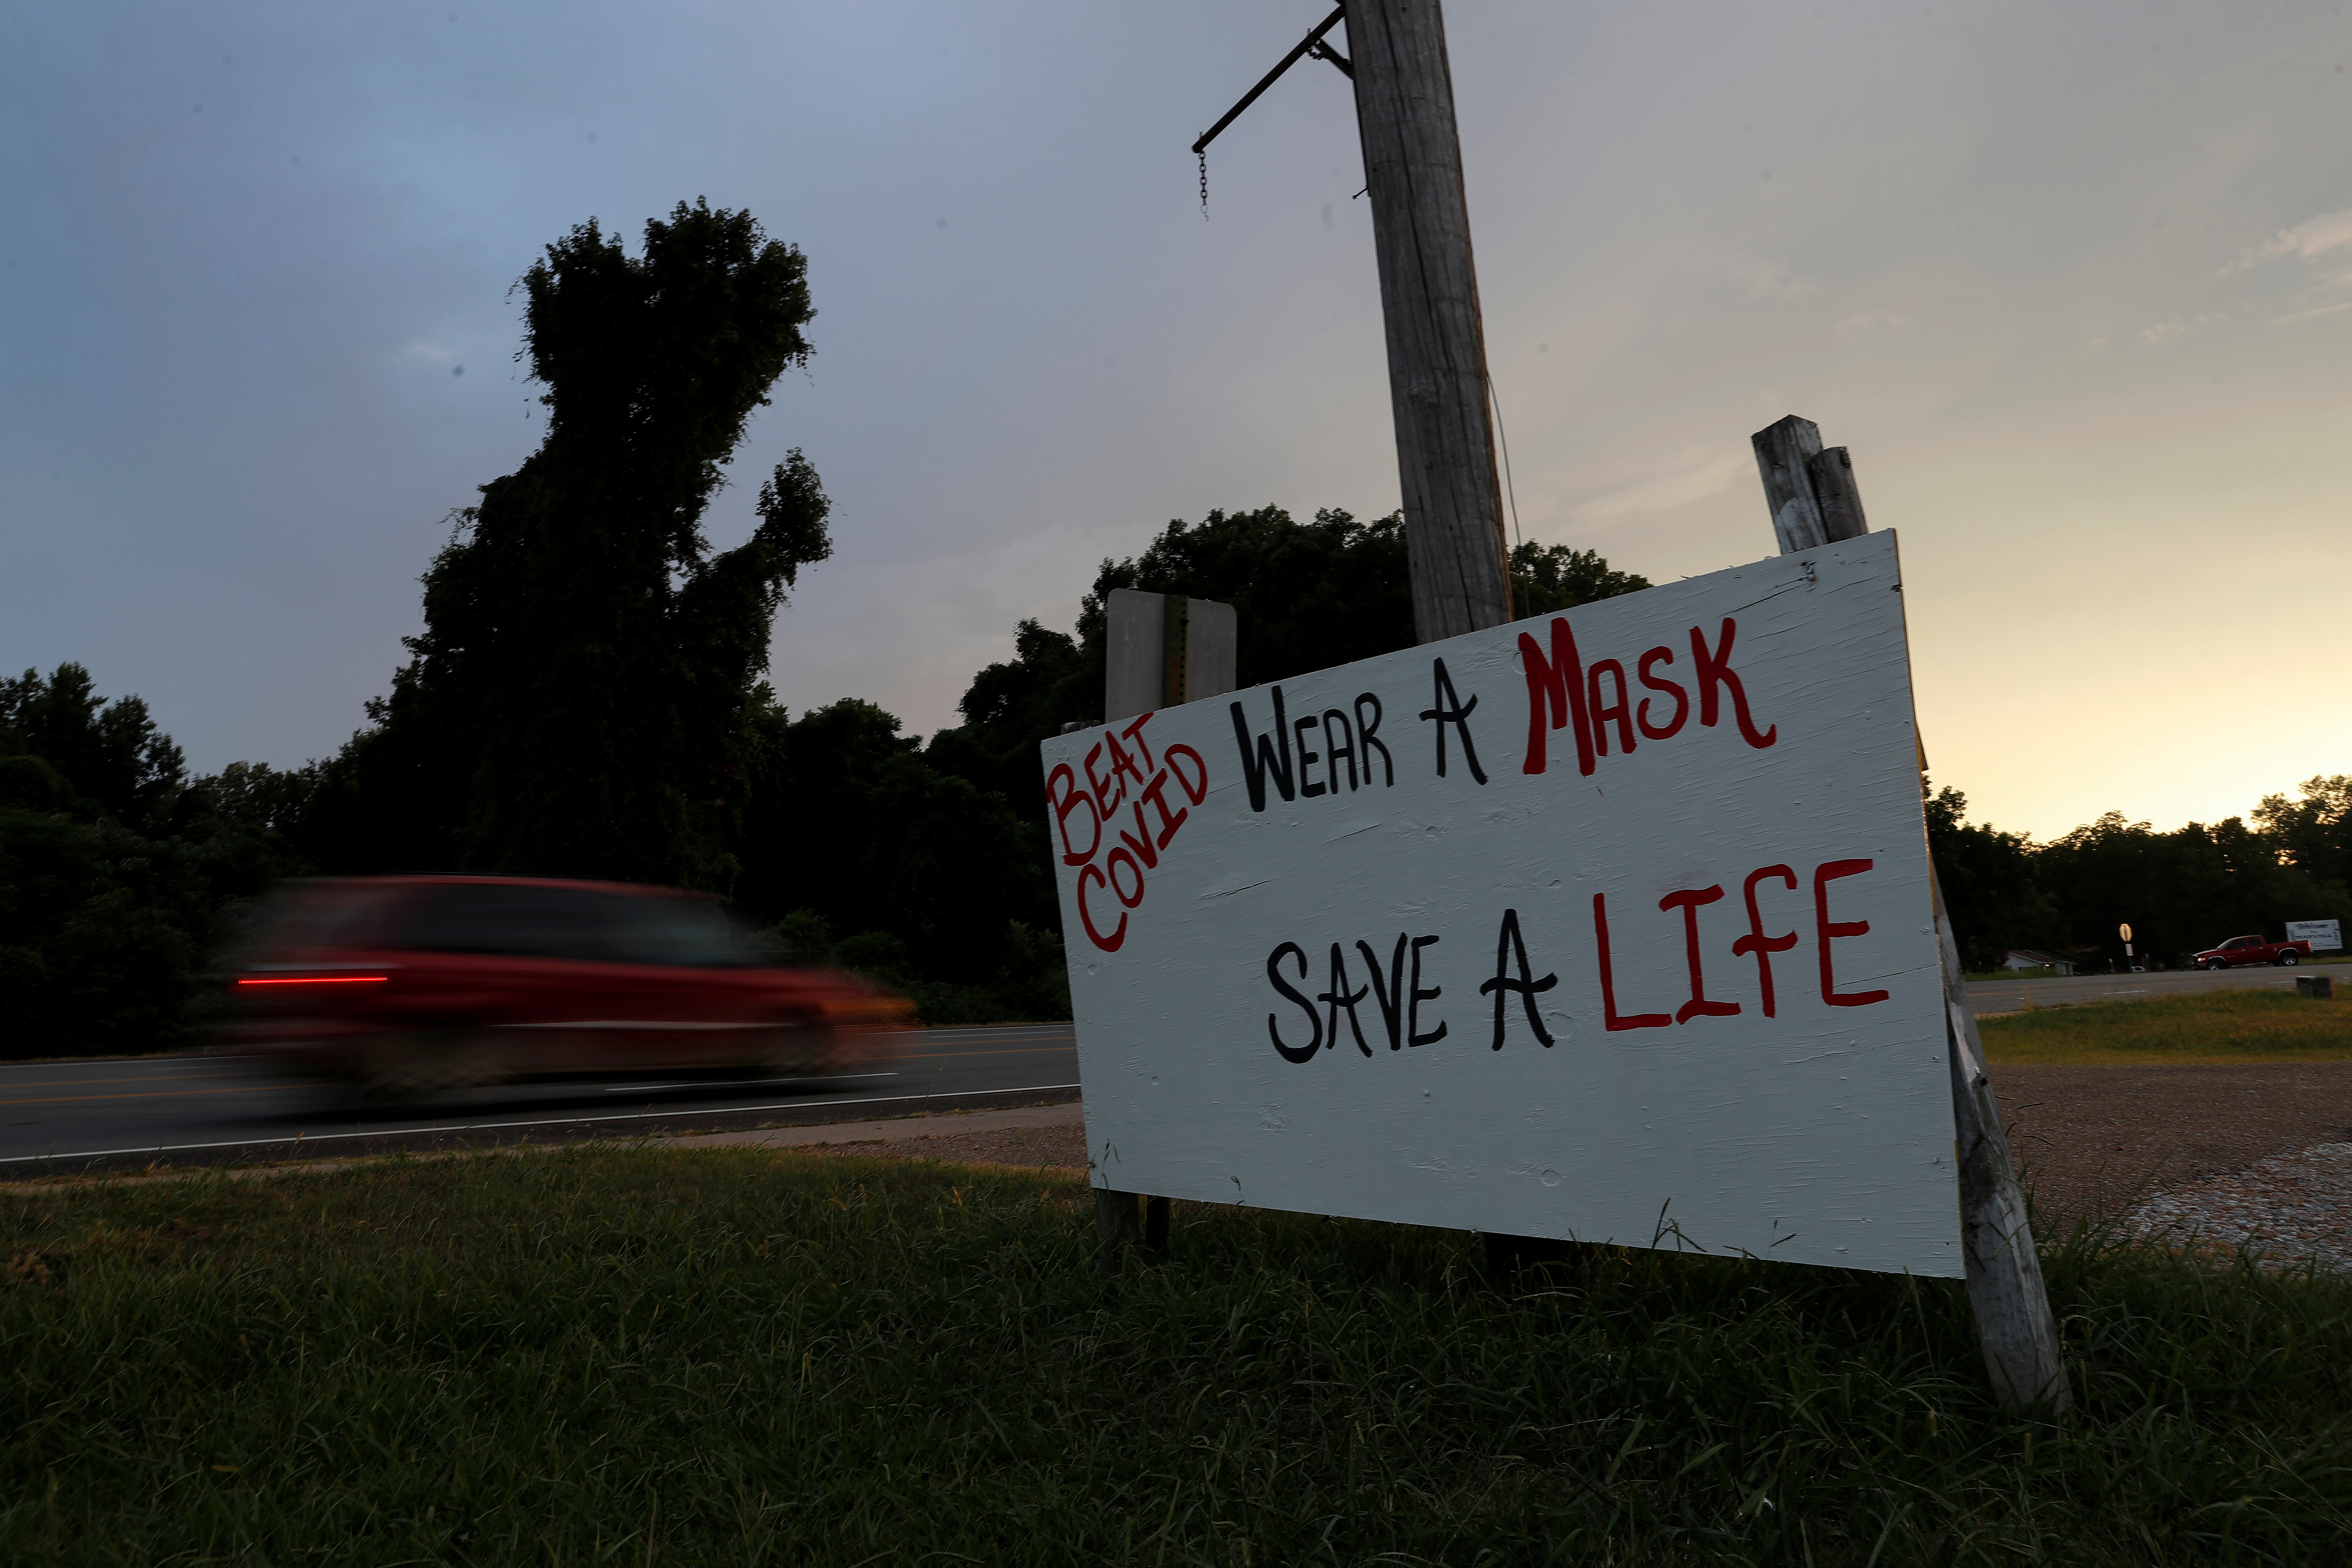 A car drives by a sign asking people to wear masks, amid the coronavirus disease (COVID19) pandemic, along U.S. Route 49 near Marvell, Arkansas, U.S., August 13, 2021. REUTERS/Shannon Stapleton